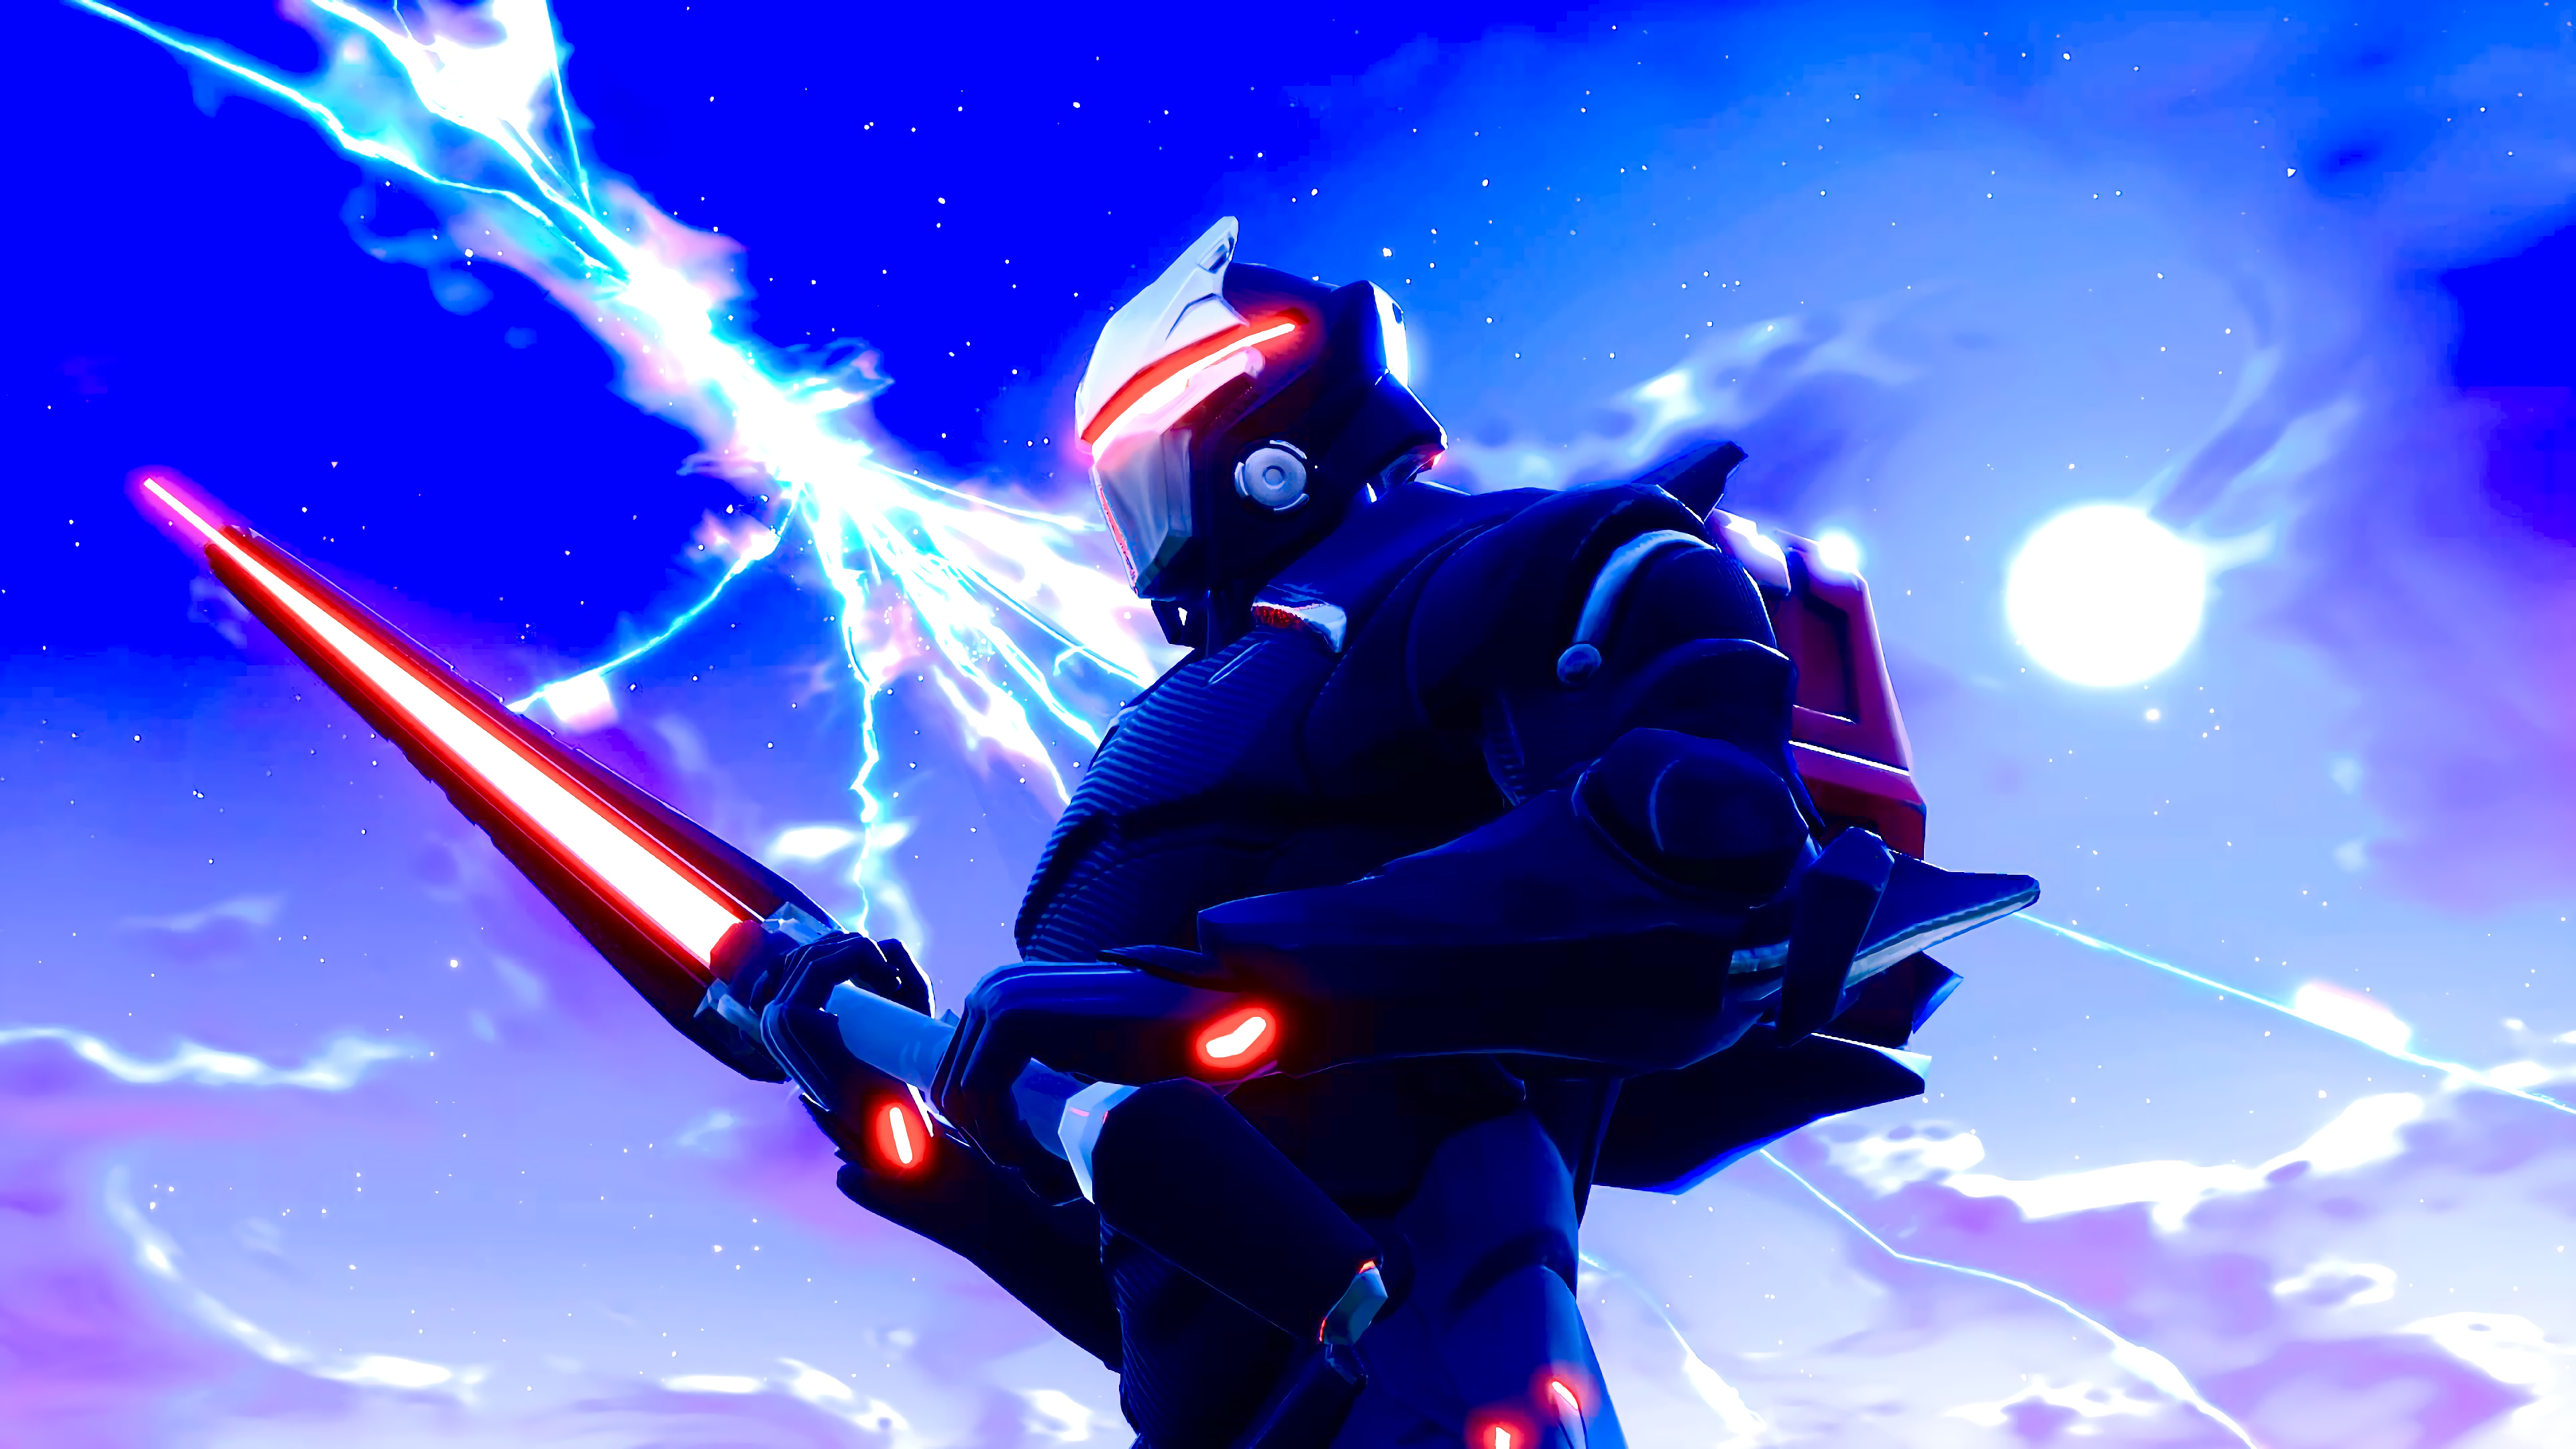 Fortnite Dark Voyager 4k Wallpapers Hd Wallpapers